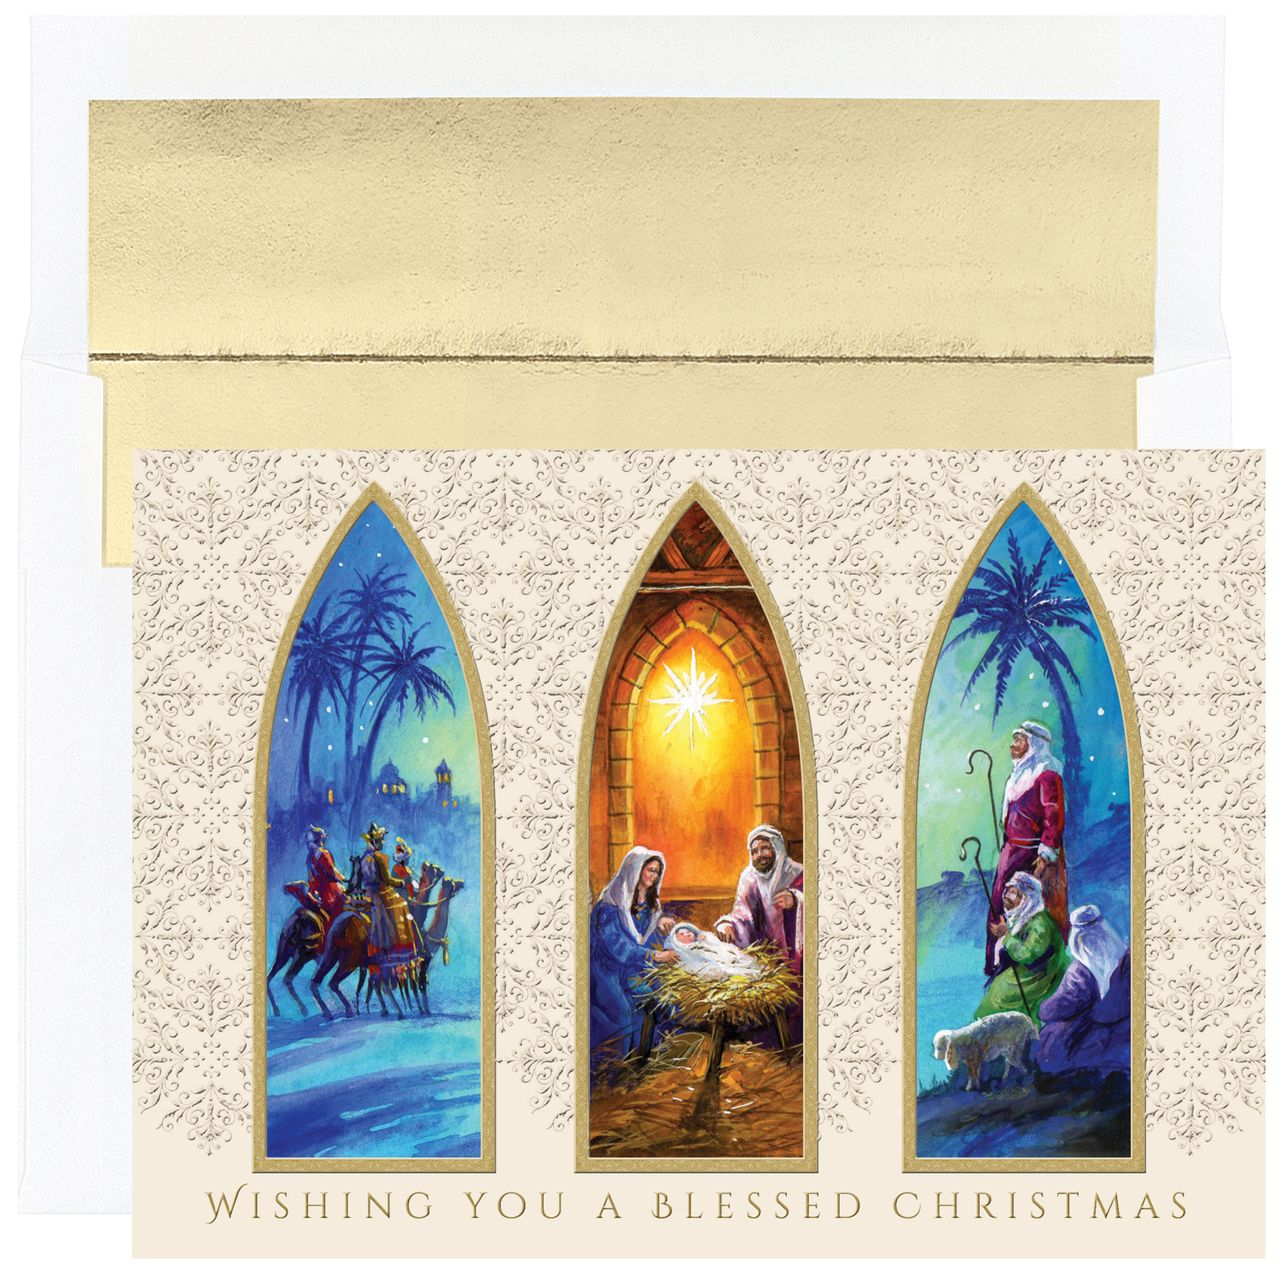 Pin on 2014 Religious Christmas Cards Christian Themes